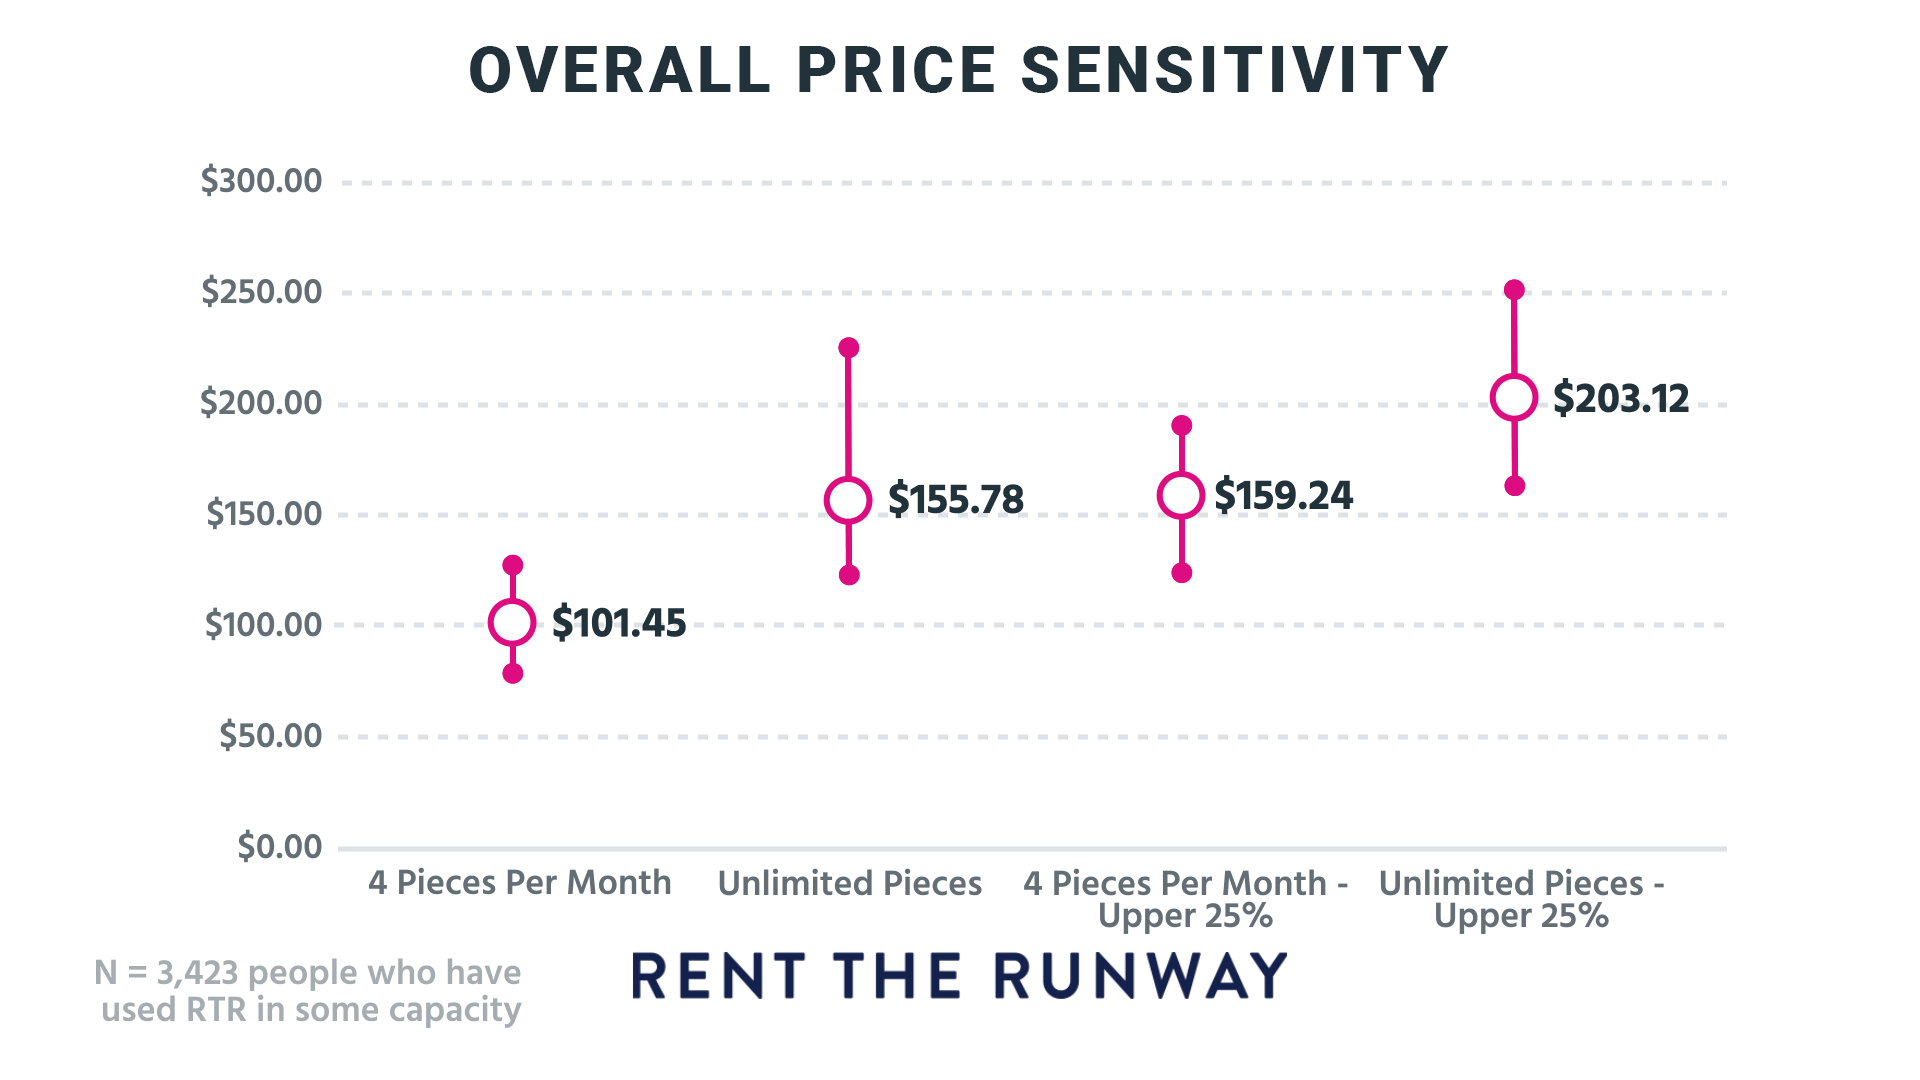 Overall_Price_Sensitivity-1.png